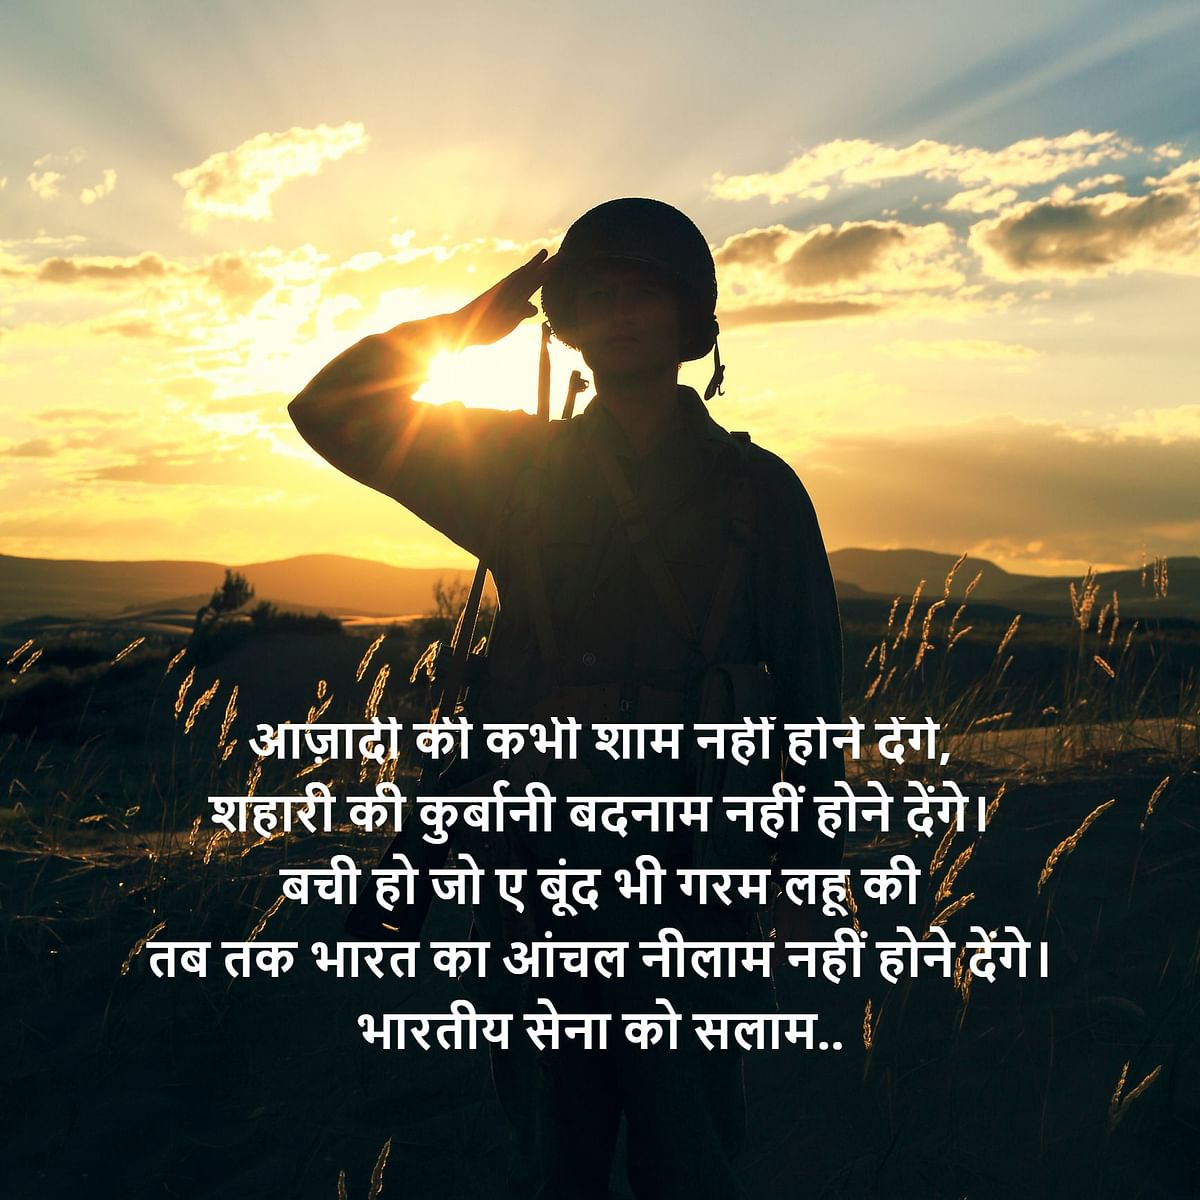 Happy Indian Army Day 2020 Wishes, Quotes, Images,FB/Whatsapp Status, Greetings and Messages.